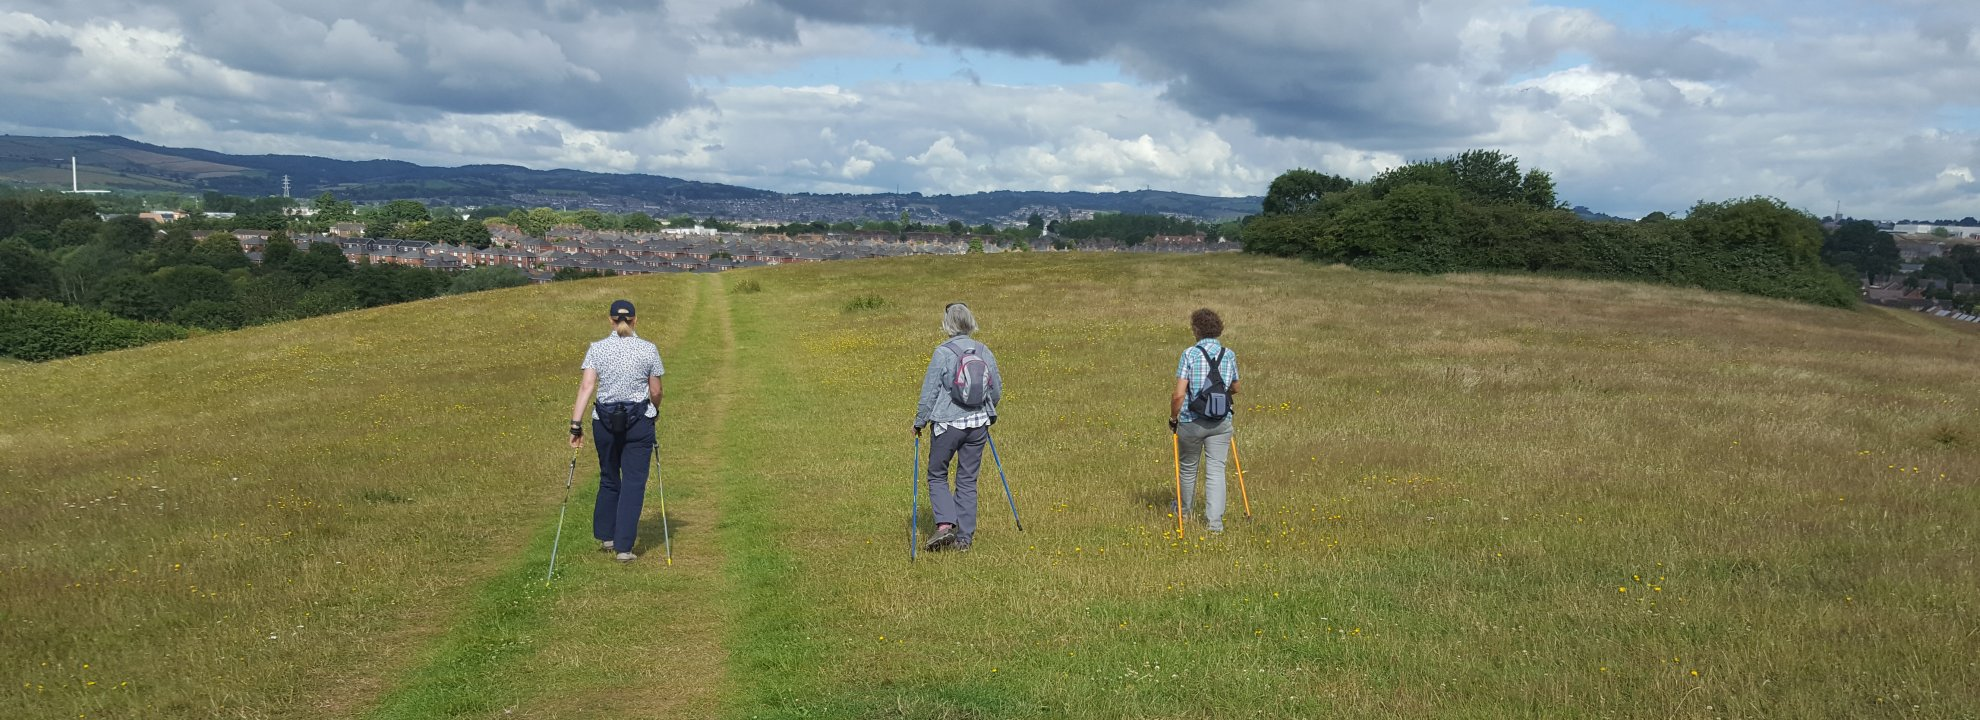 Nordic Walk - Ripple - Ludwell Valley Park Banner